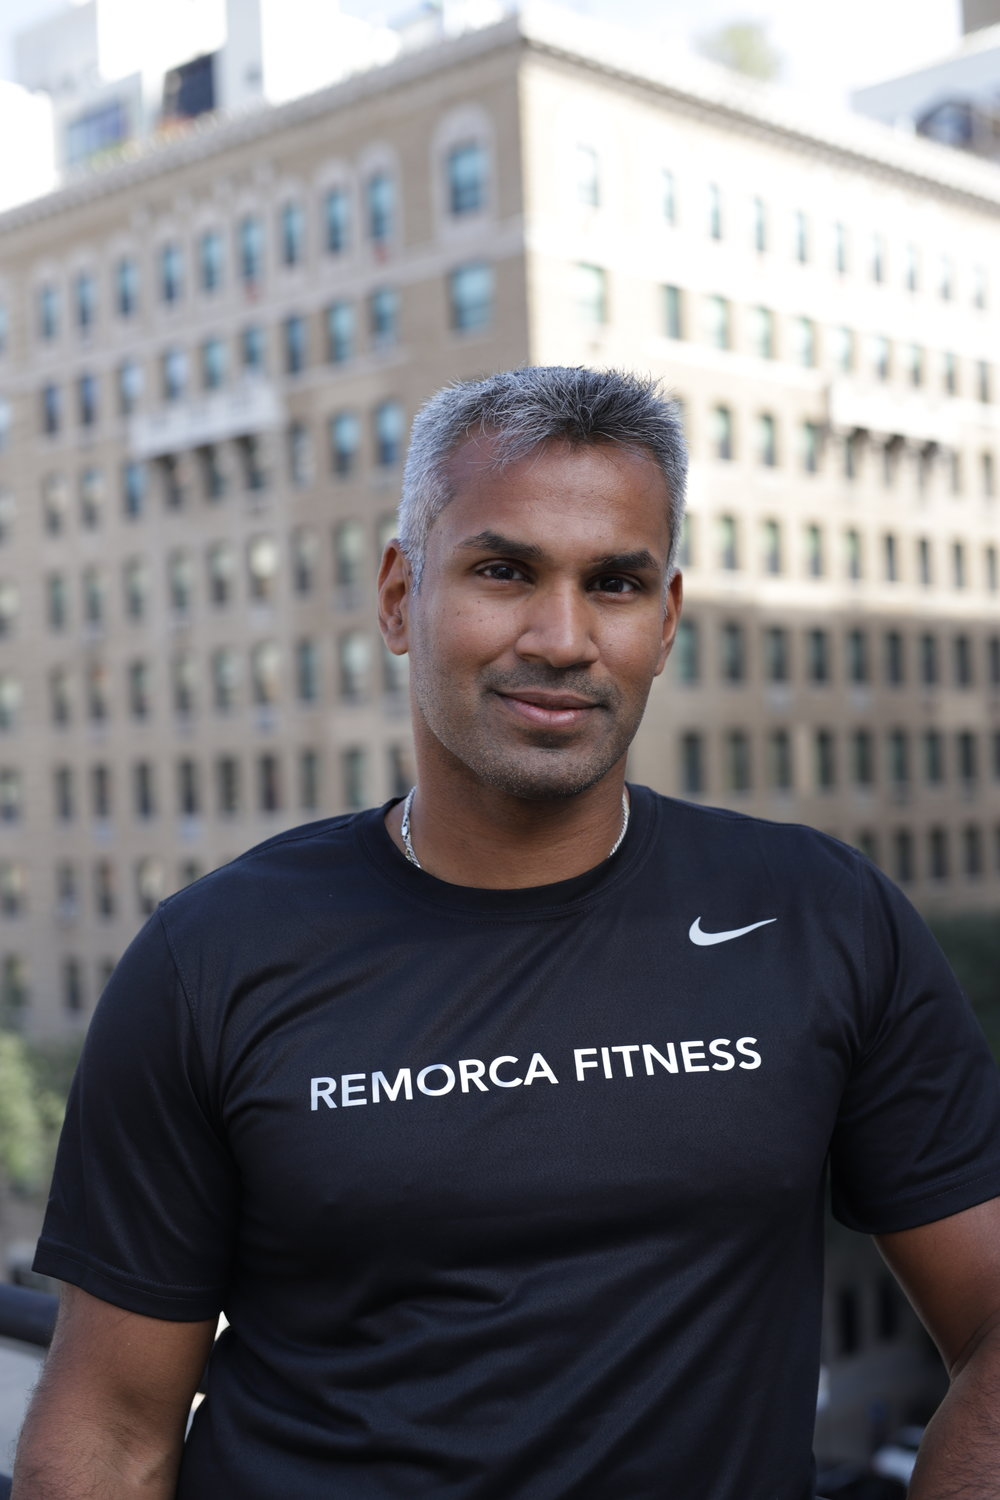 RICKY - PERSONAL TRAINER AT REMORCA FTINESS UPPER EAST SIDECERTIFICATIONS:EDUCATION:SPECIALTY/EXPERTISE:FITNESS HOBBIES:NON FITNESS THING ABOUT ME